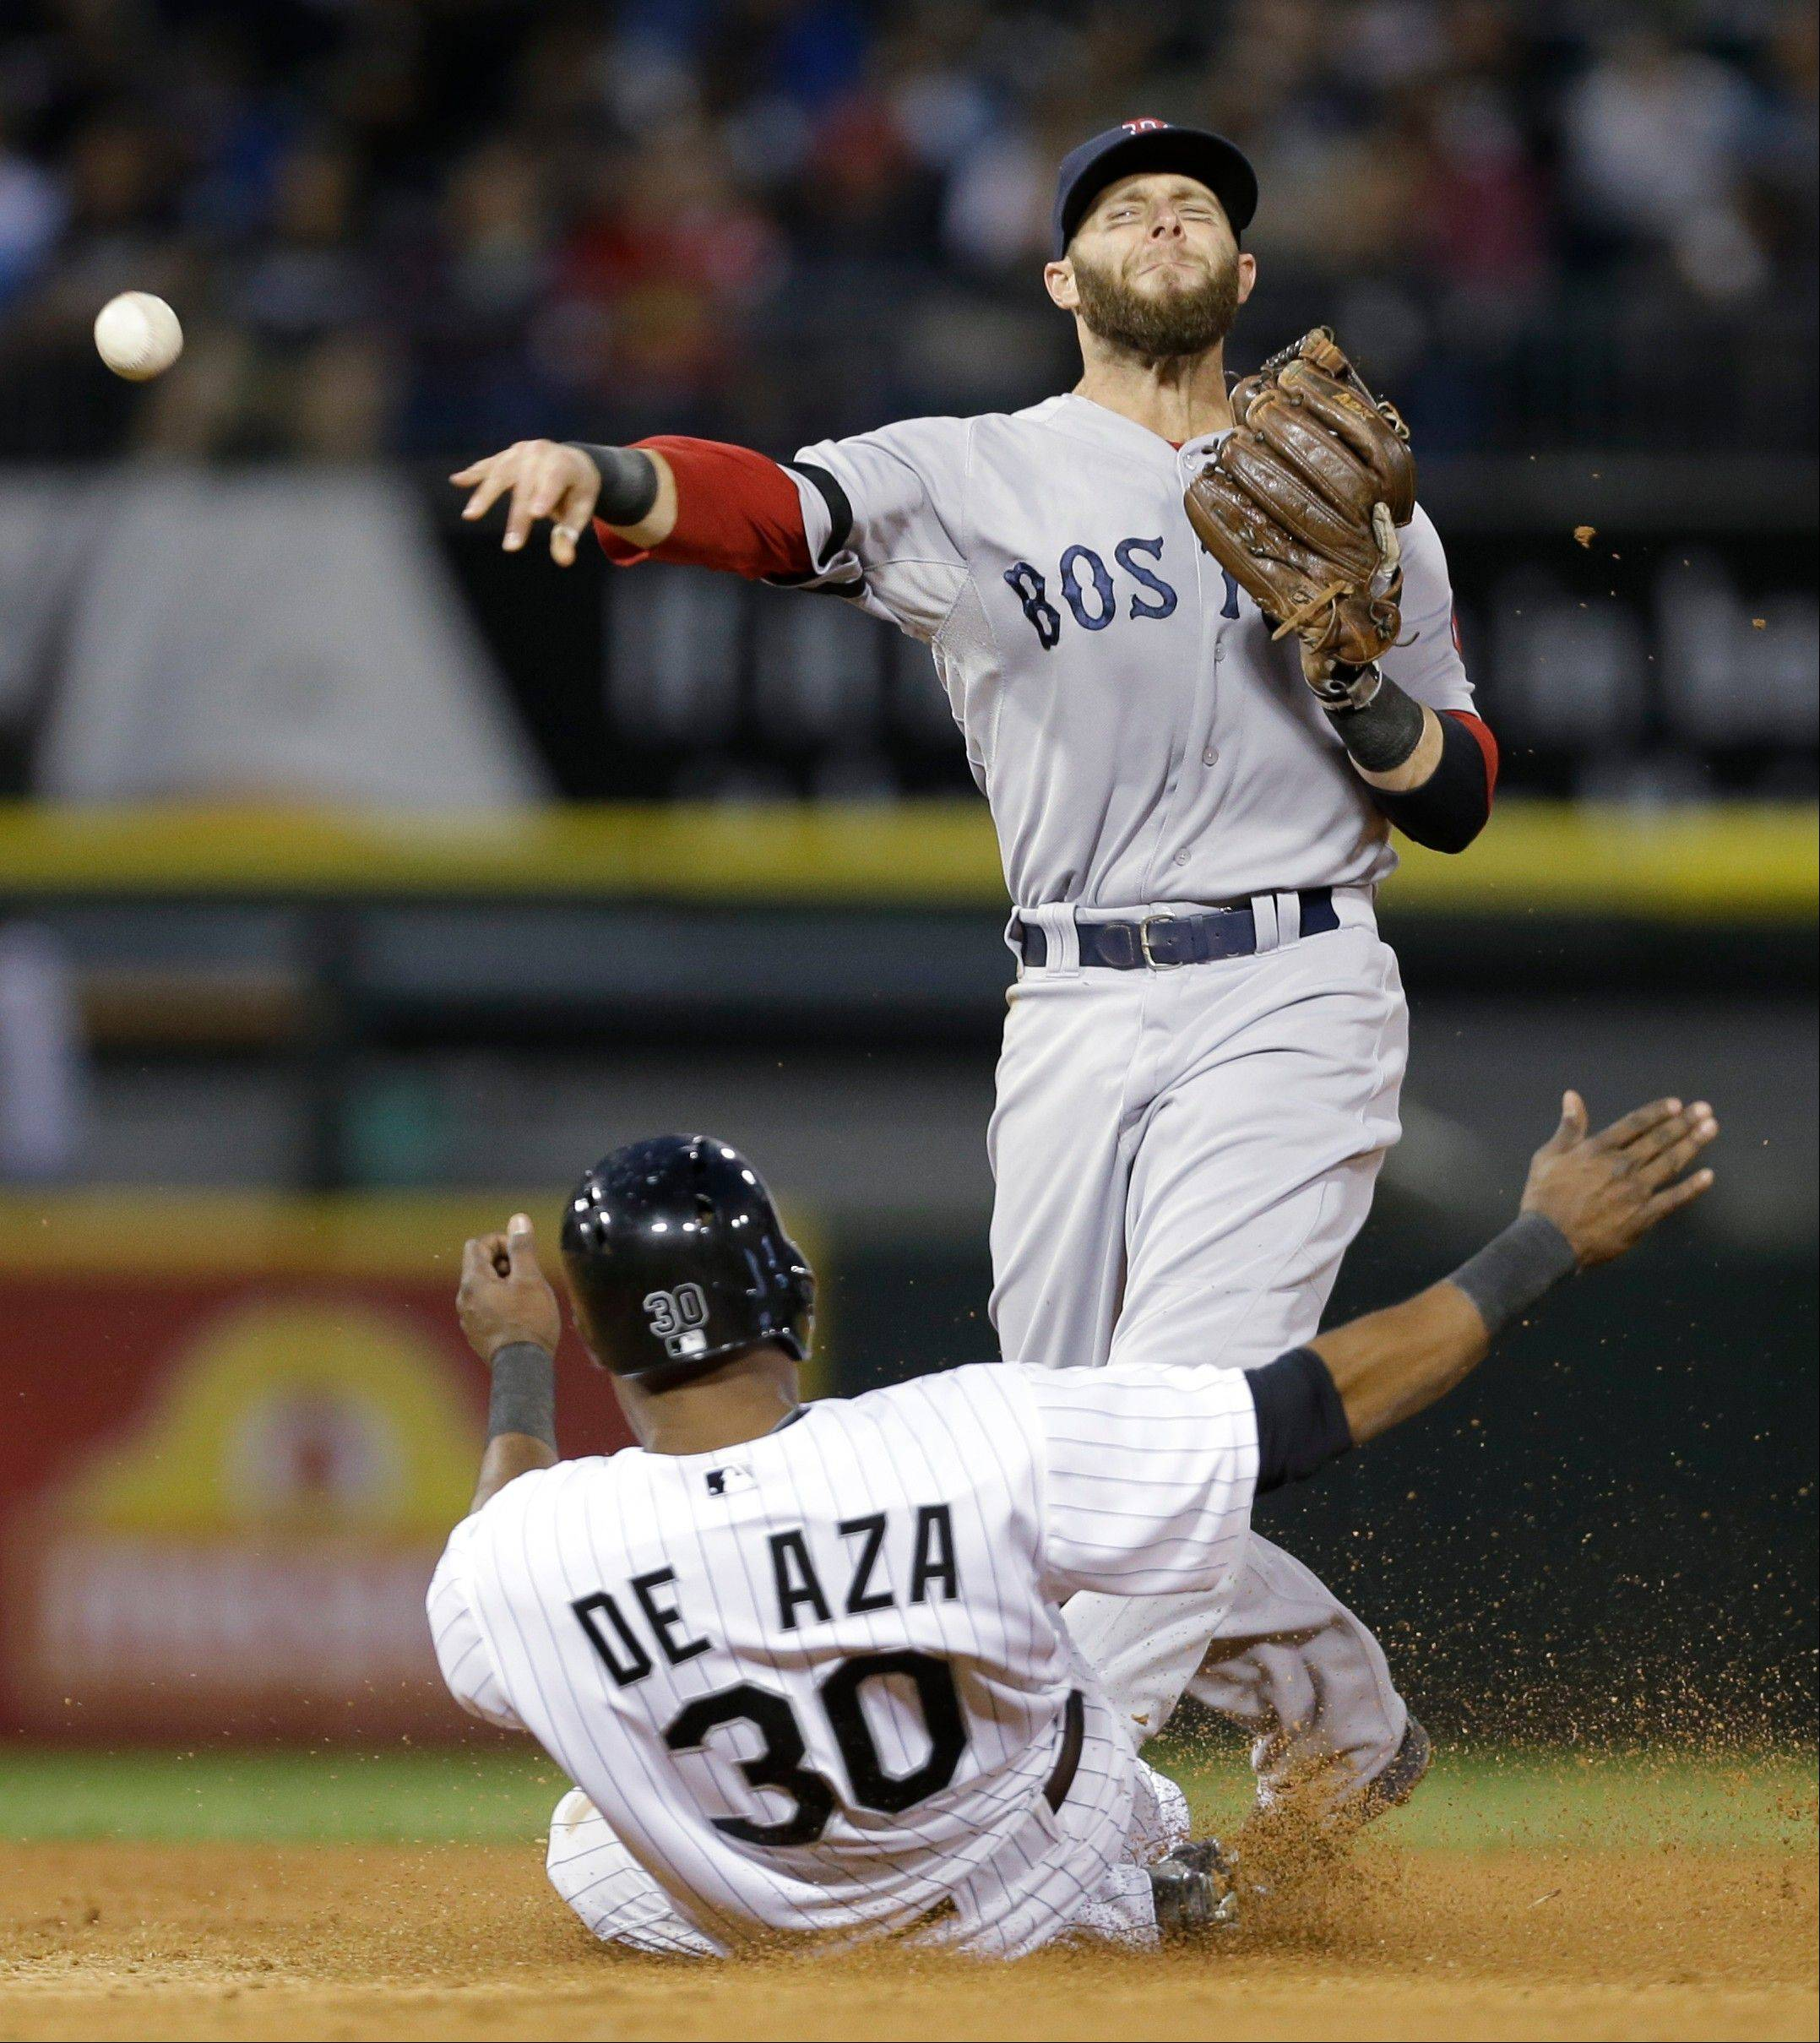 Boston Red Sox second baseman Dustin Pedroia, top, throws to first after forcing out Chicago White Sox�s Alejandro De Aza during the third inning of a baseball game in Chicago, Wednesday, May 22, 2013. Alexei Ramirez was safe at first.